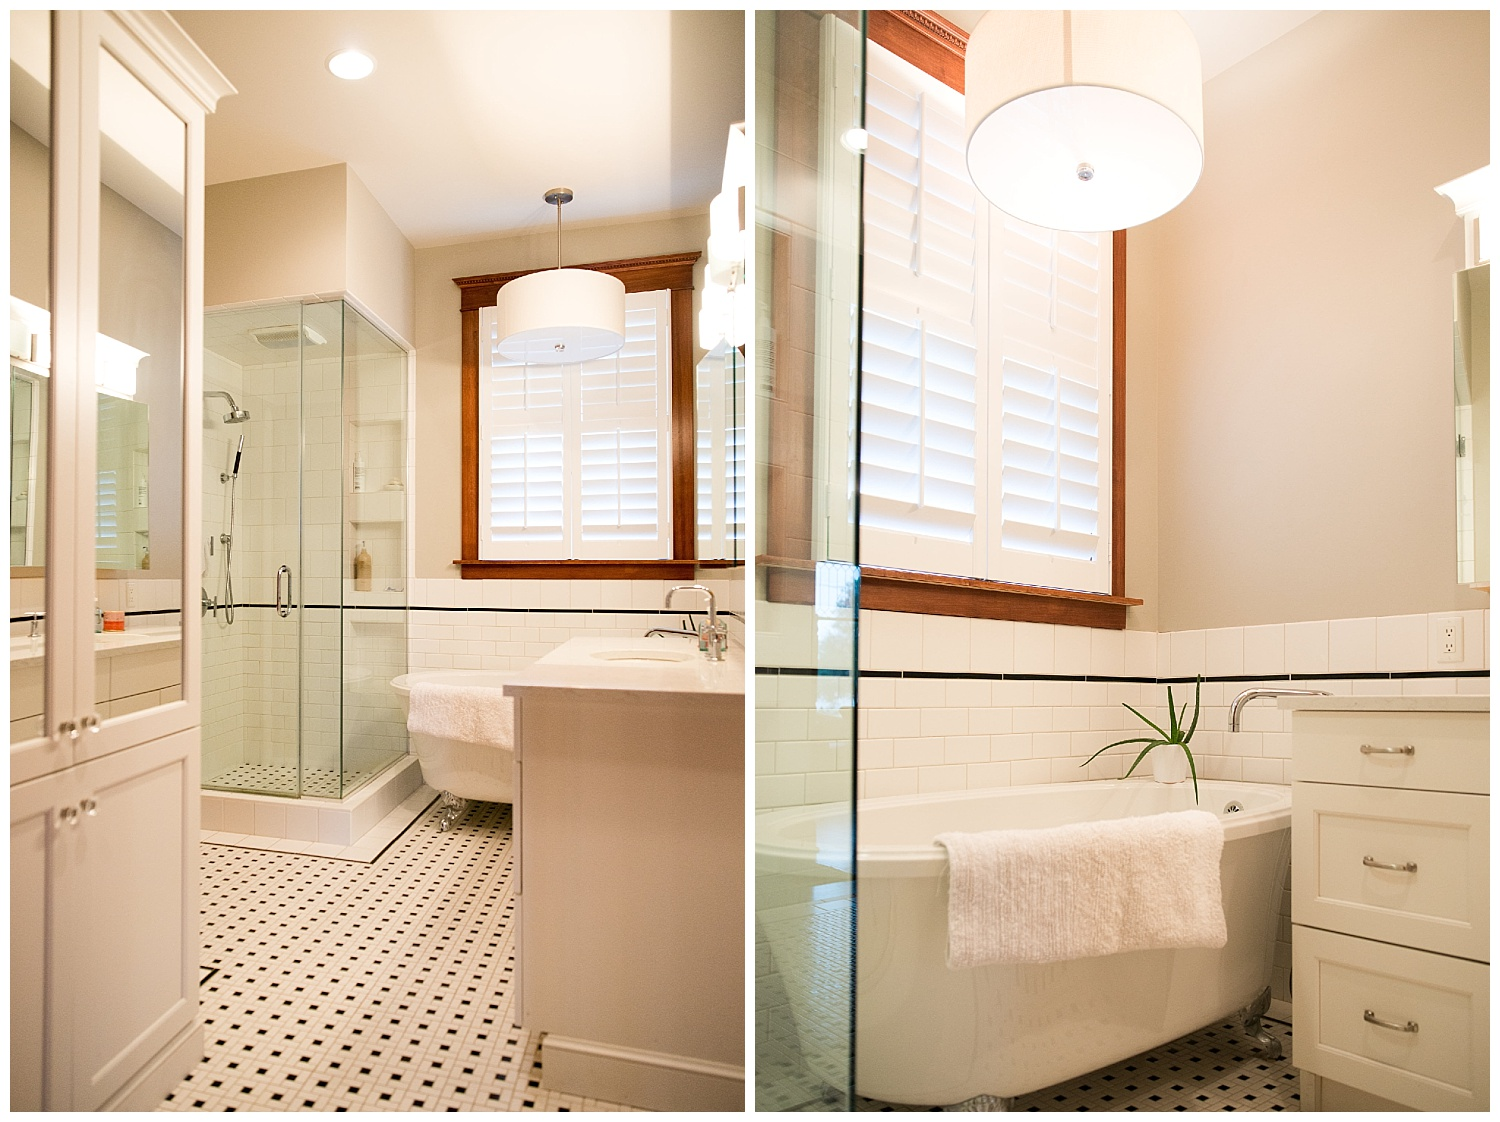 What I love about this bathroom, in addition to the new tile, claw-foot tub and overall simplicity of it,are the kids' drawings taped to the wall. : )